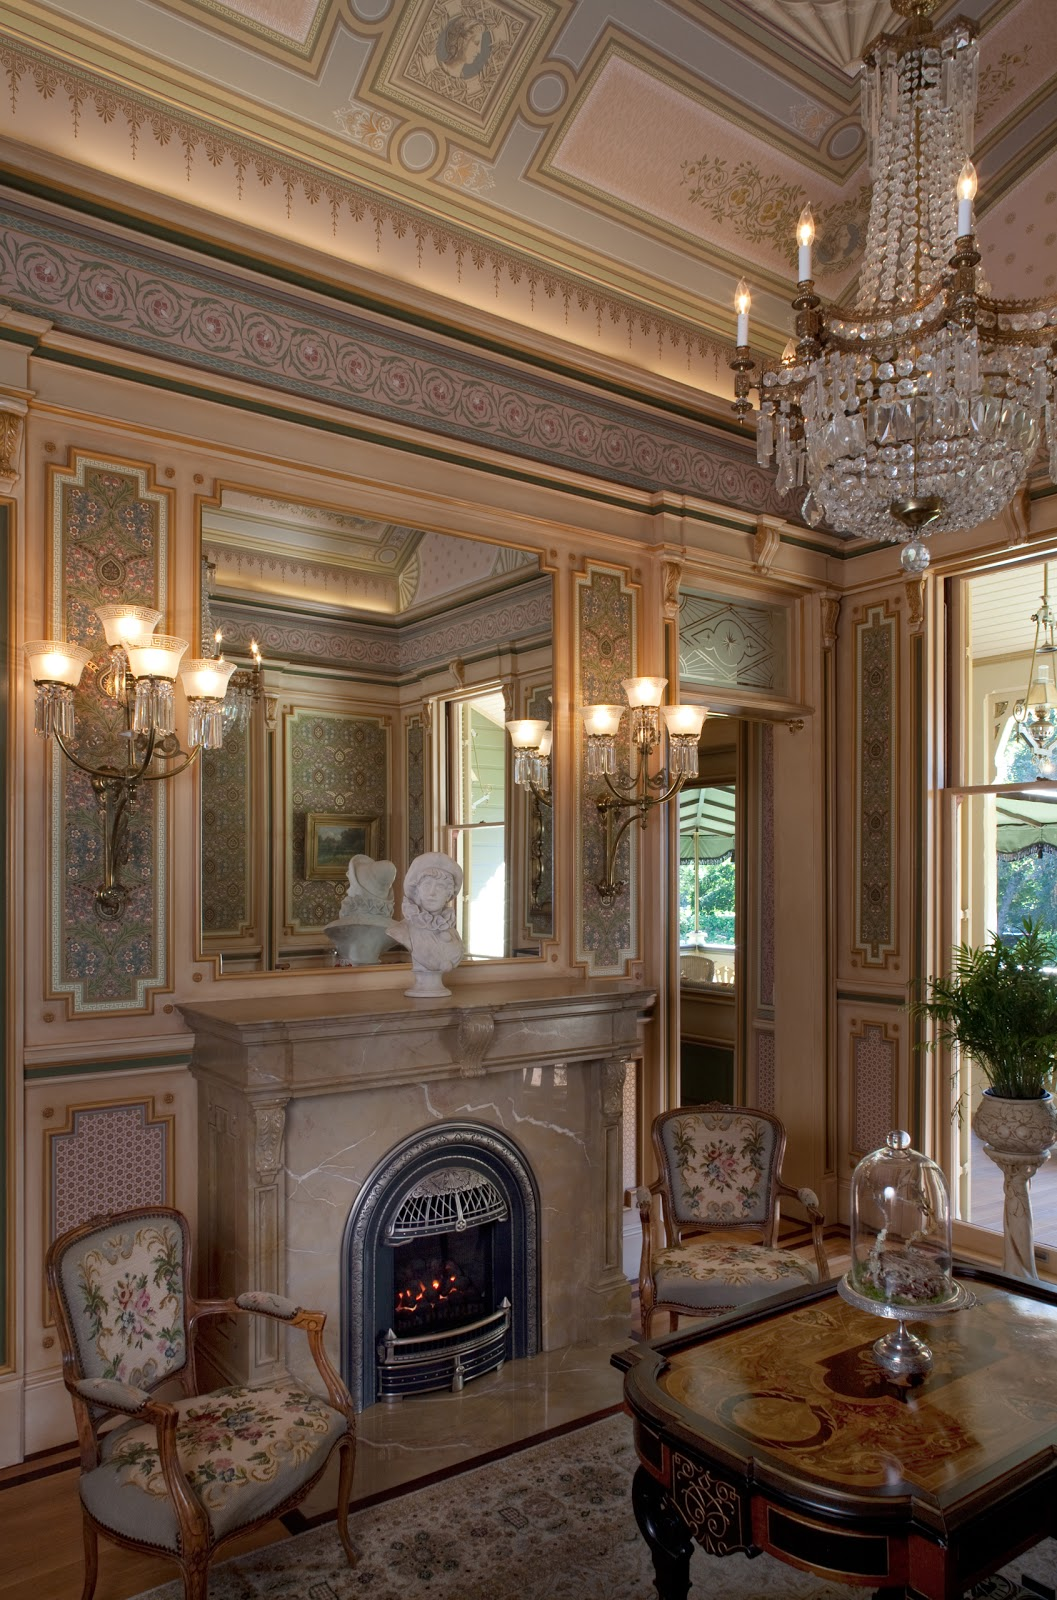 Rooms: Rynerson OBrien Architecture, Inc.: The McDonald Mansion's